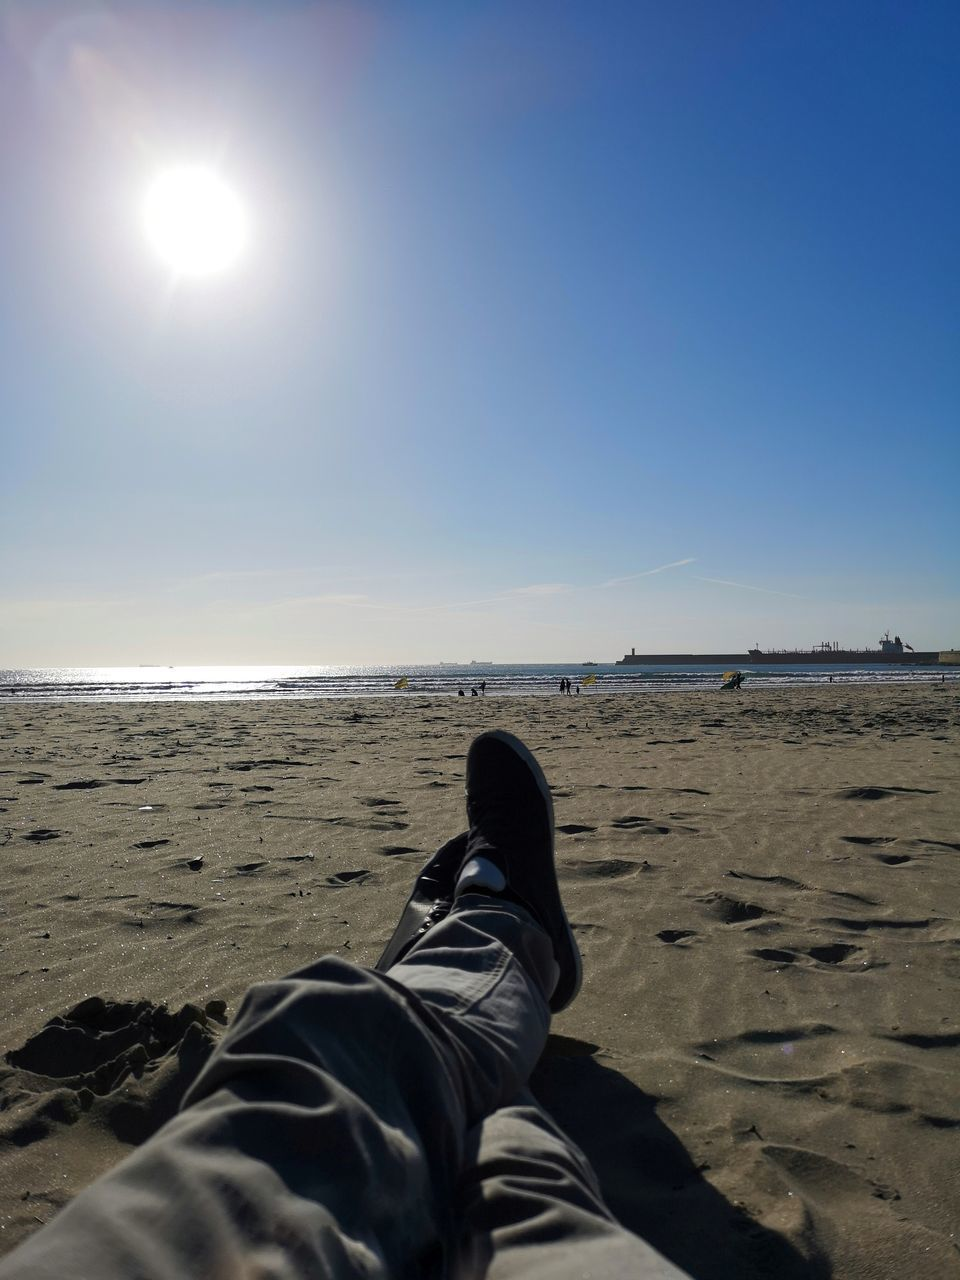 LOW SECTION OF MAN ON BEACH